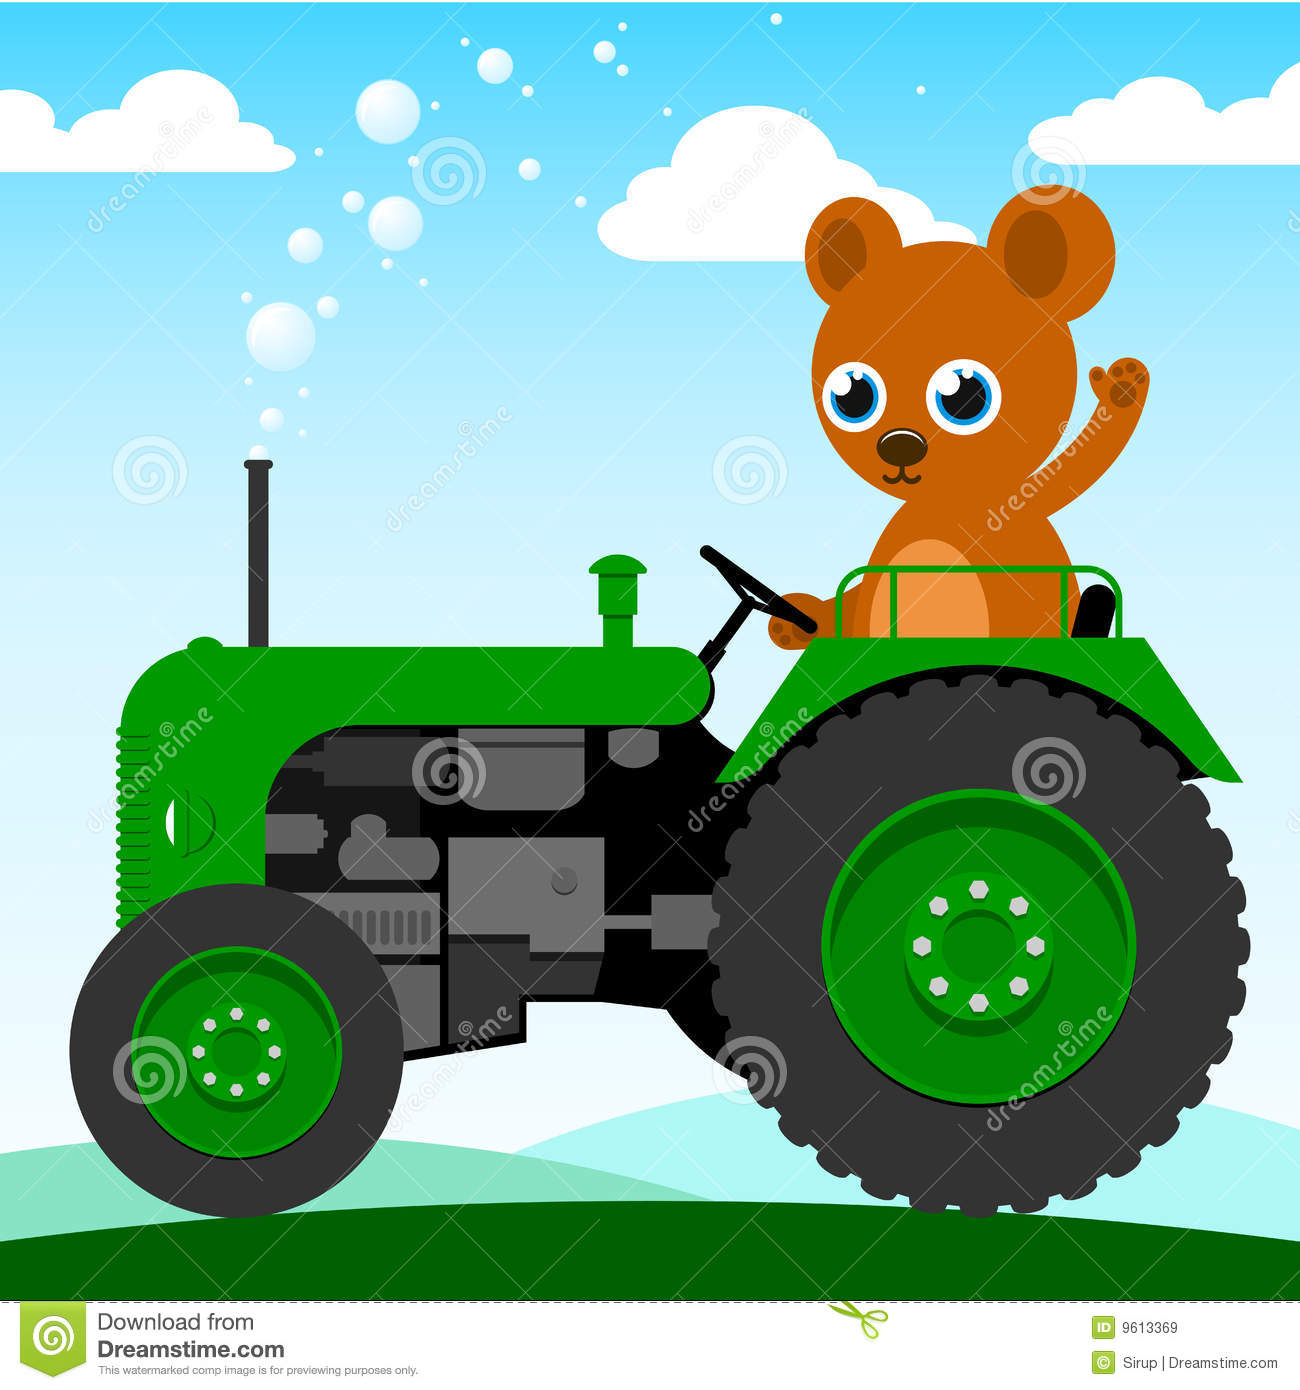 Up The Tractor Green Tractor With Bucket Cartoon : Cute bear driving an old tractor royalty free stock images